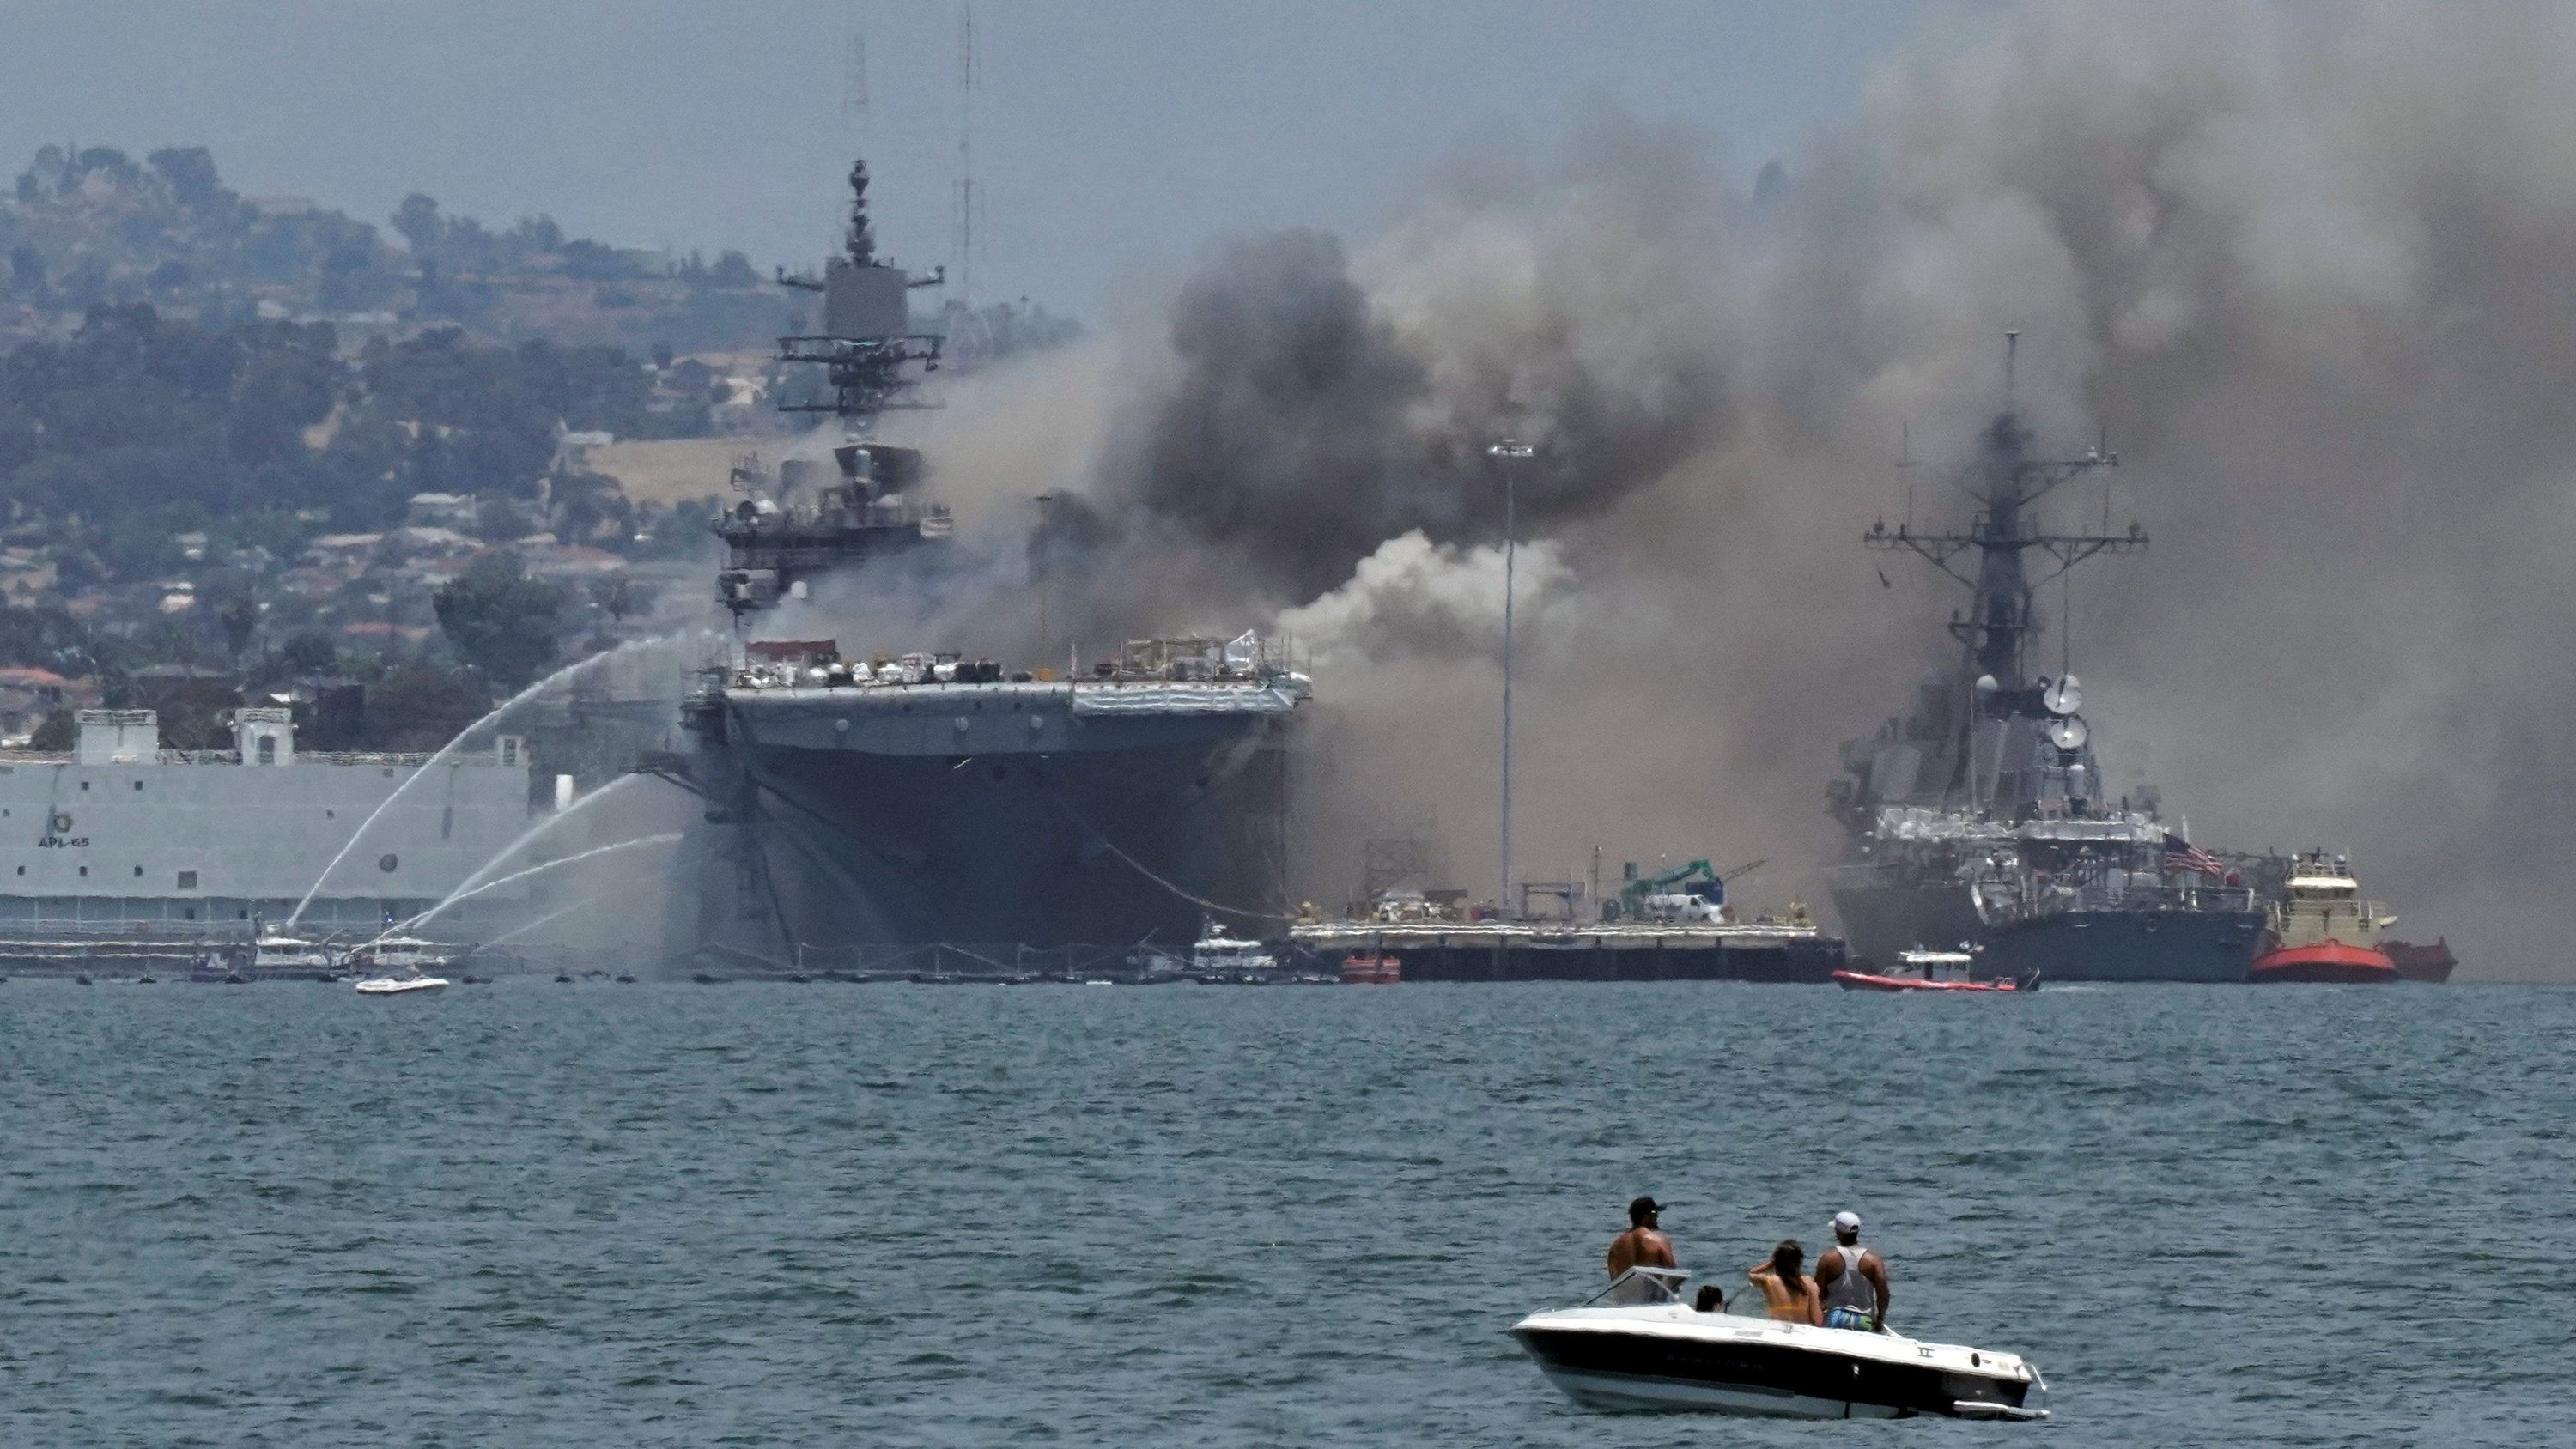 Navy Ship Continues to Burn Off San Diego After Fire